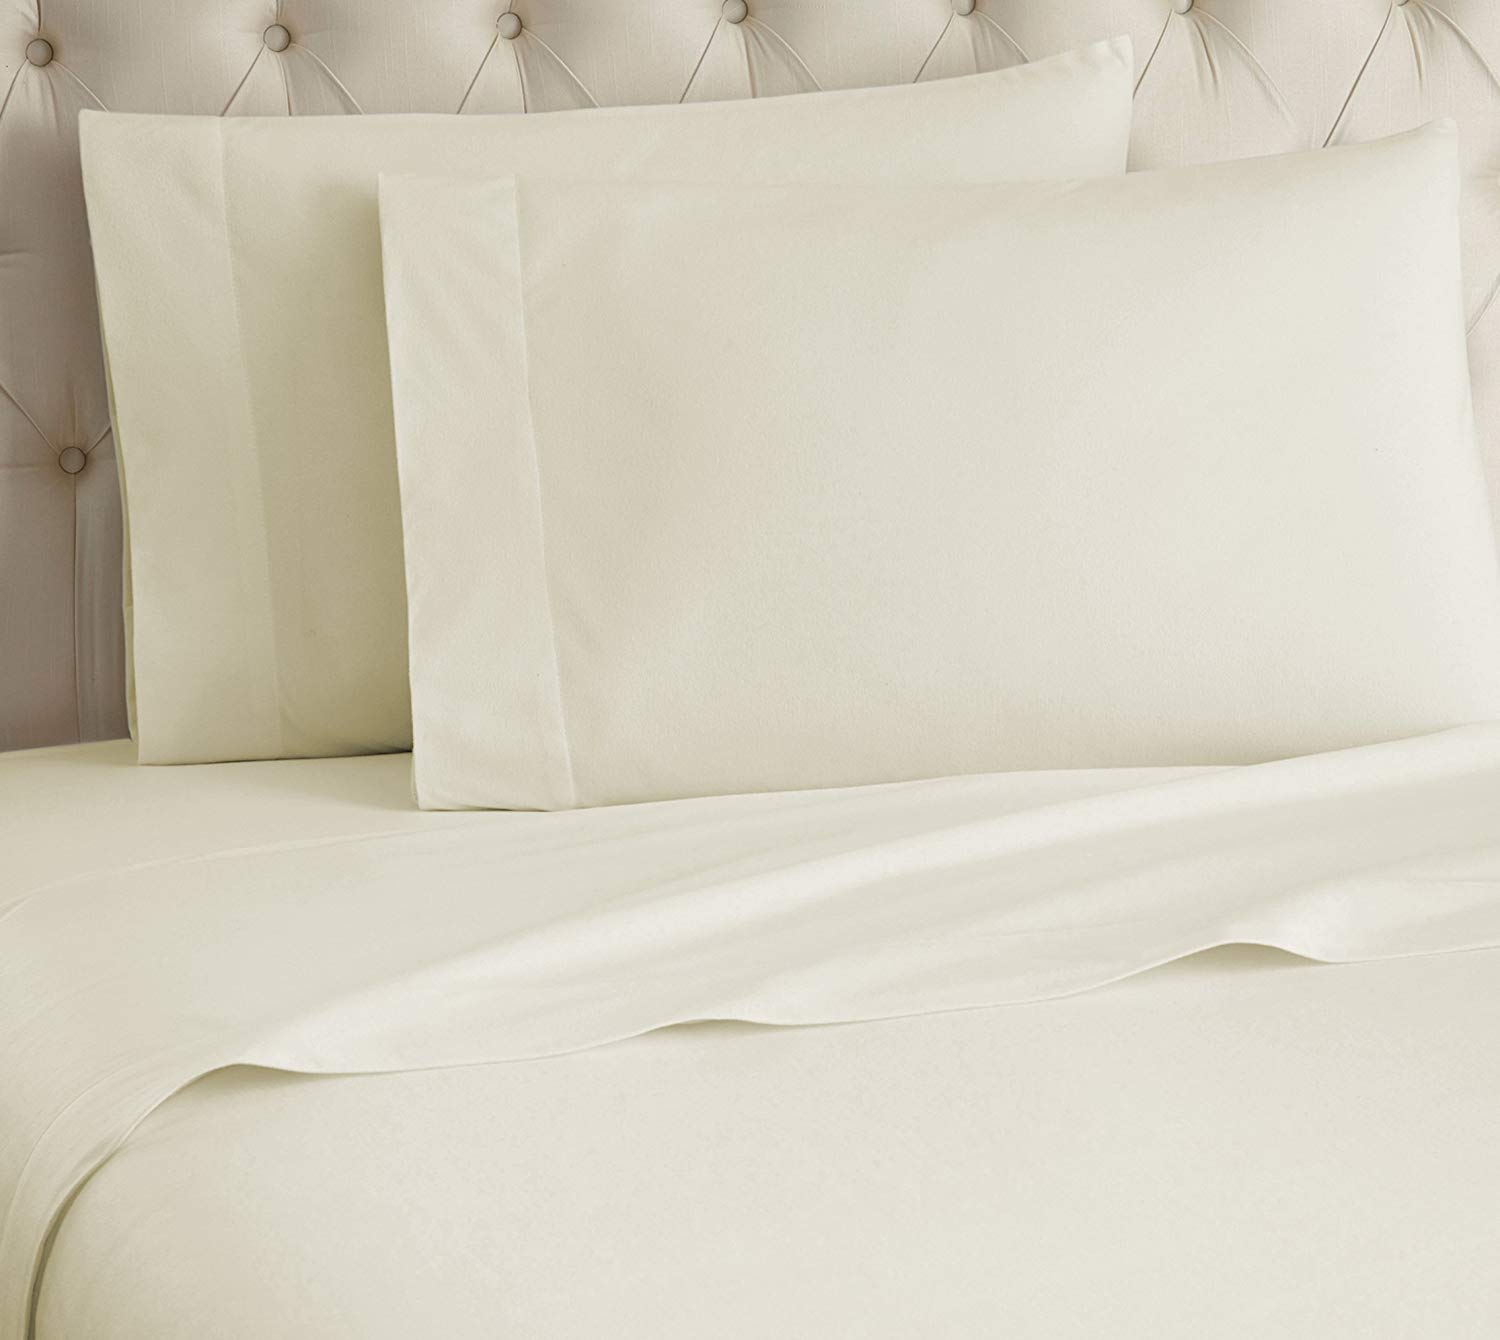 Image of Callista 600 thread count sheets of 100% cotton - Best 600 Thread Count Sheets